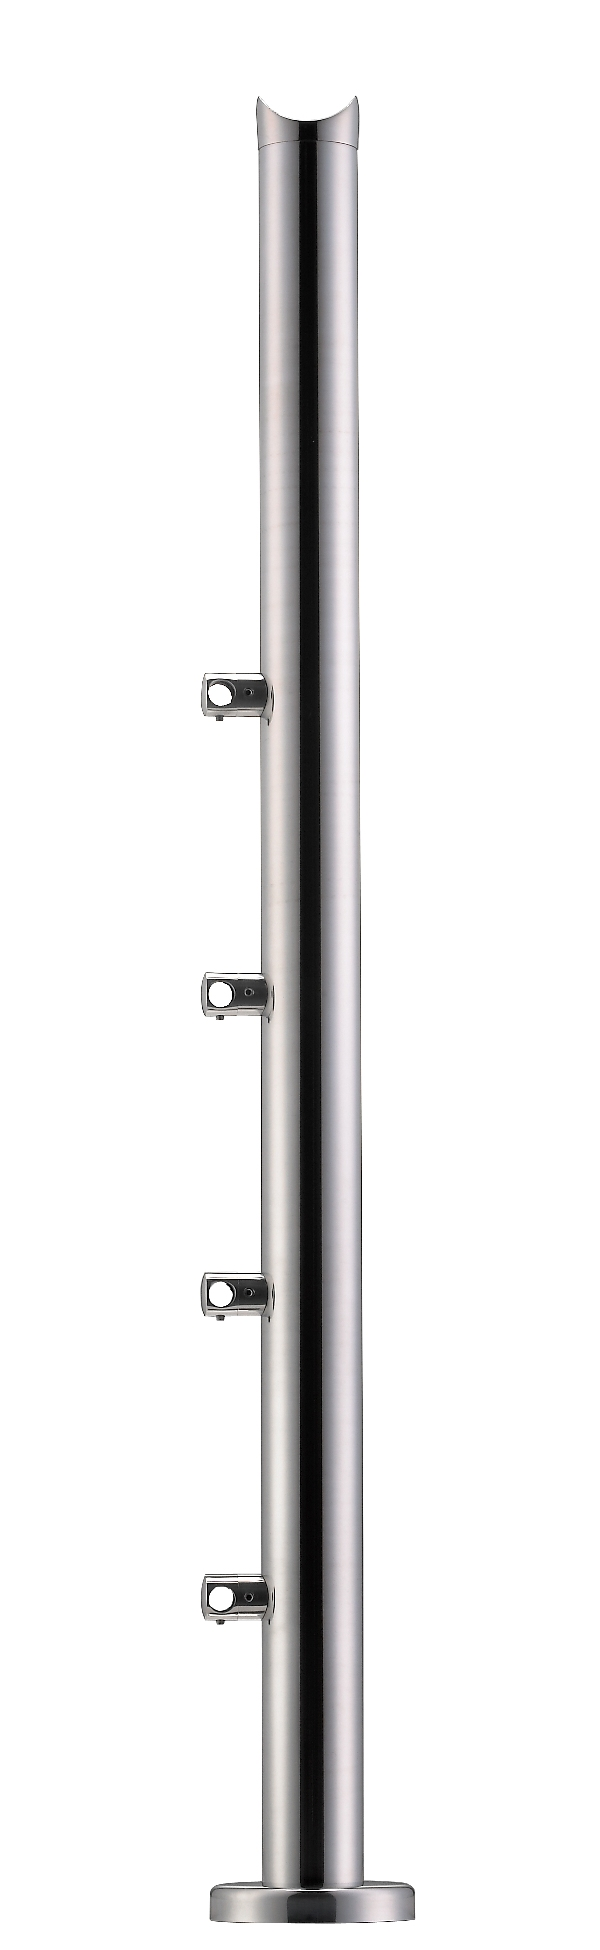 Stainless Steel Balustrade Posts - Tubular - SS:2020477A